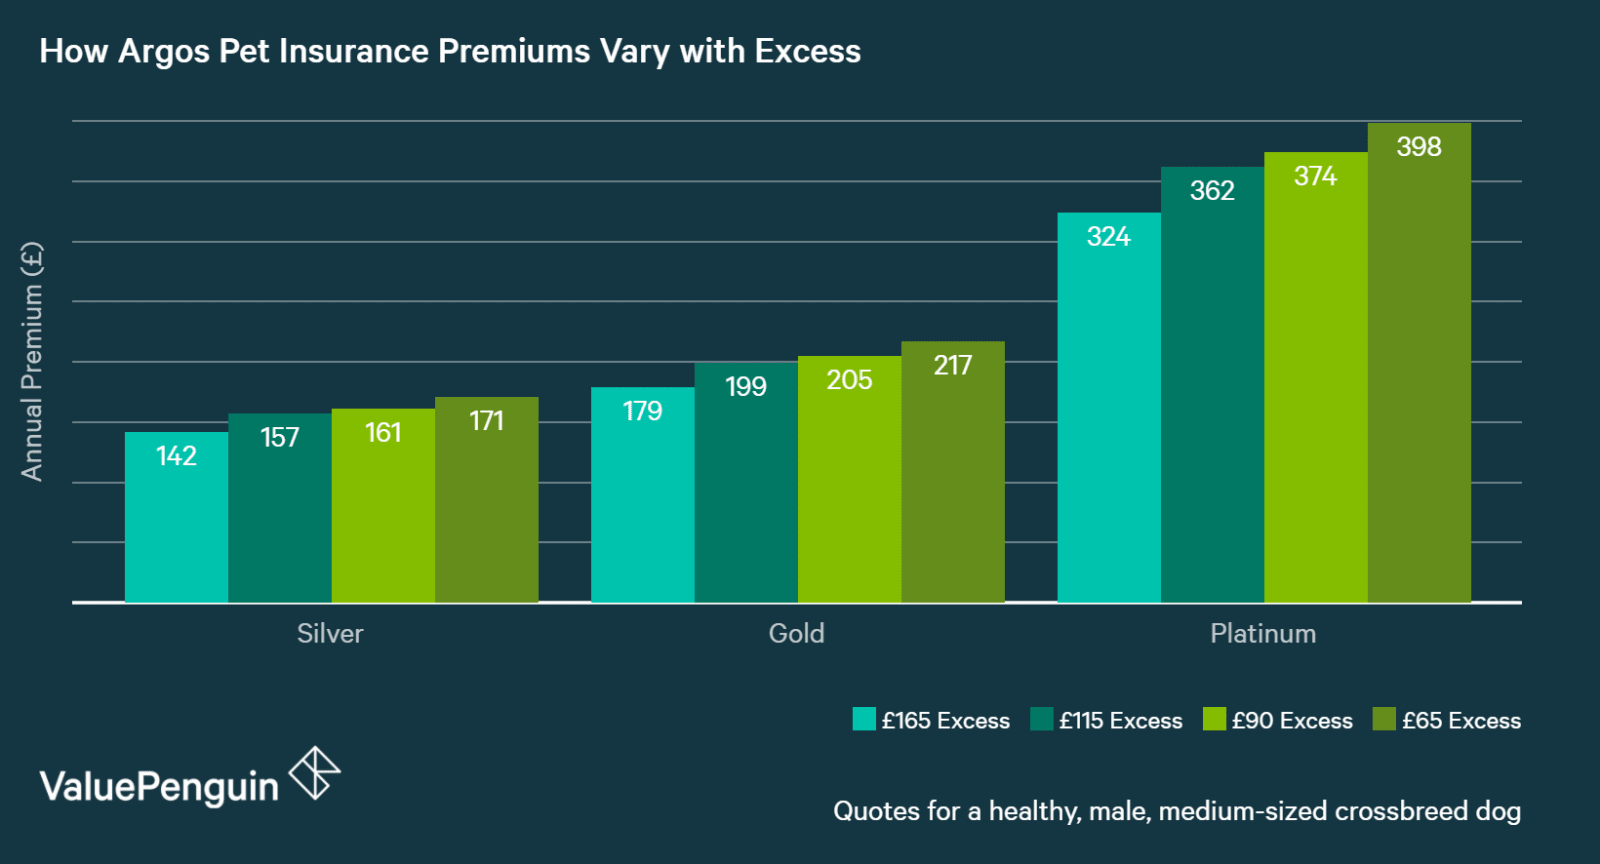 chart showing how asda dog insurance premiums vary with excess